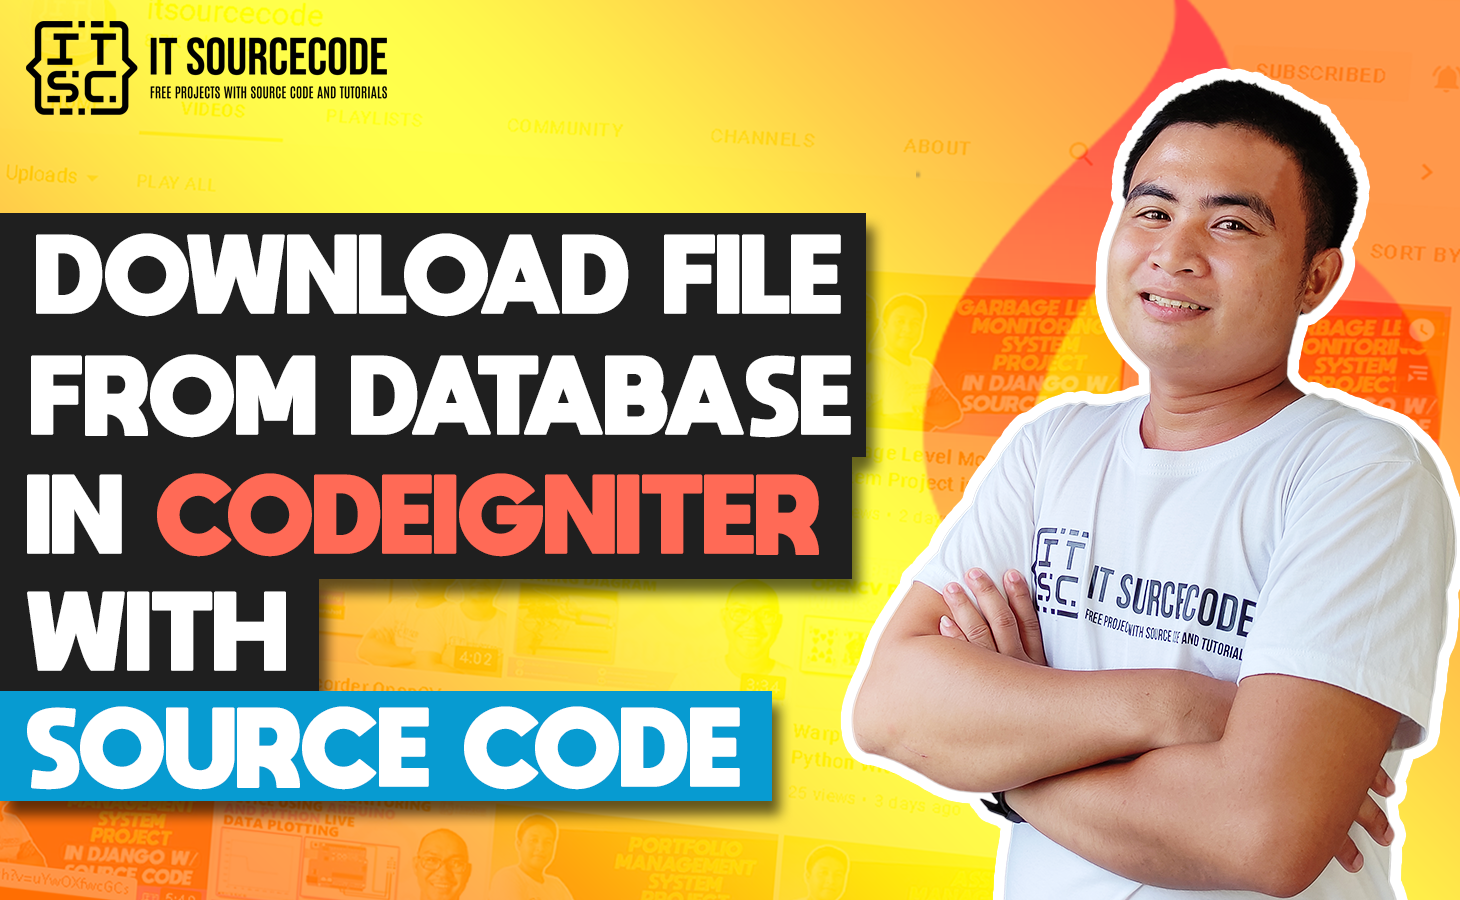 CodeIgniter Download File From Database With Source Code